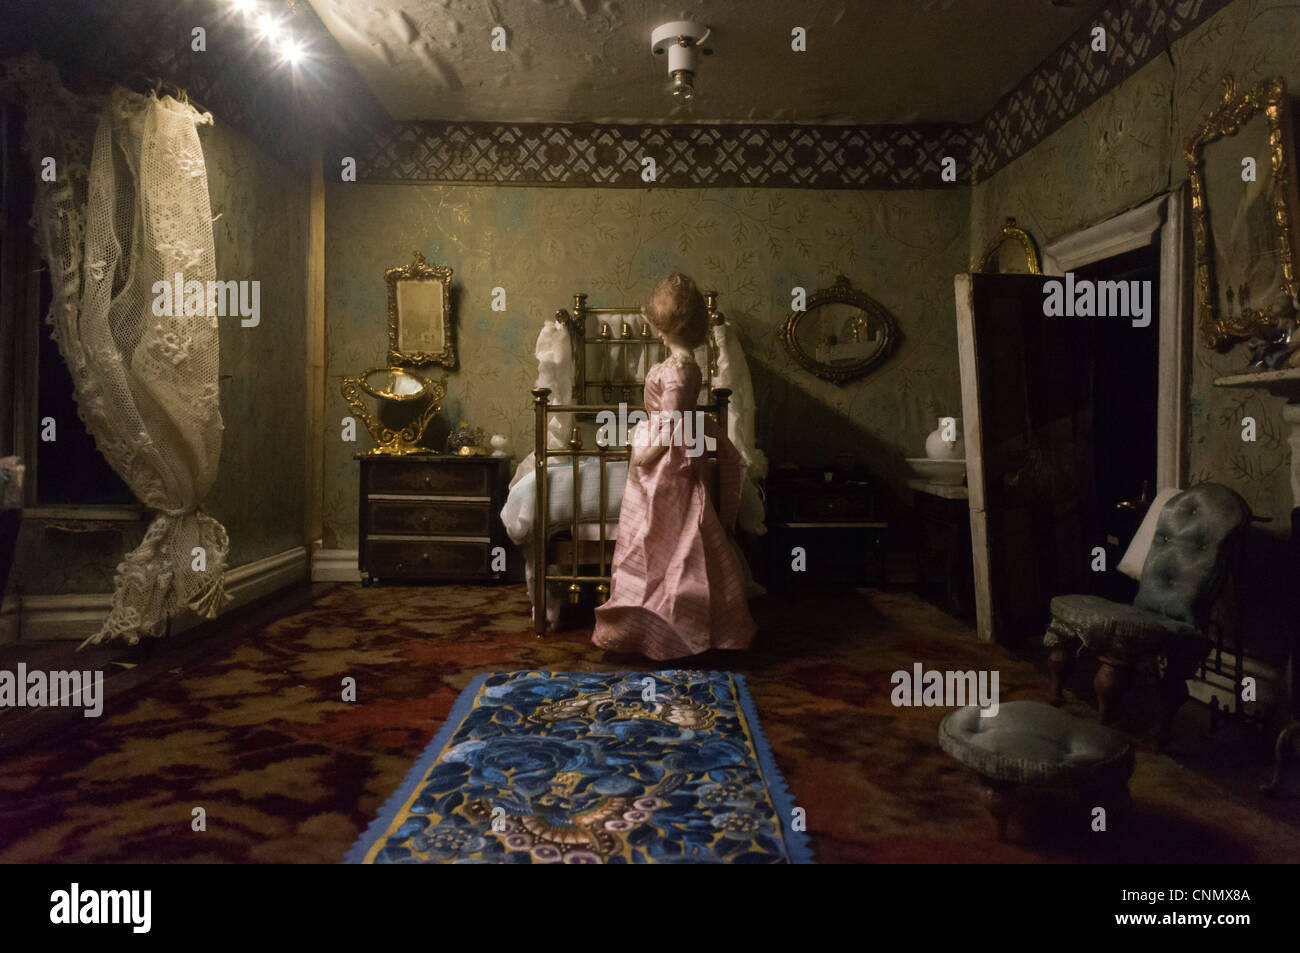 Victorian style old doll\u0027s house interior & Victorian style old doll\u0027s house interior Stock Photo: 47788170 - Alamy